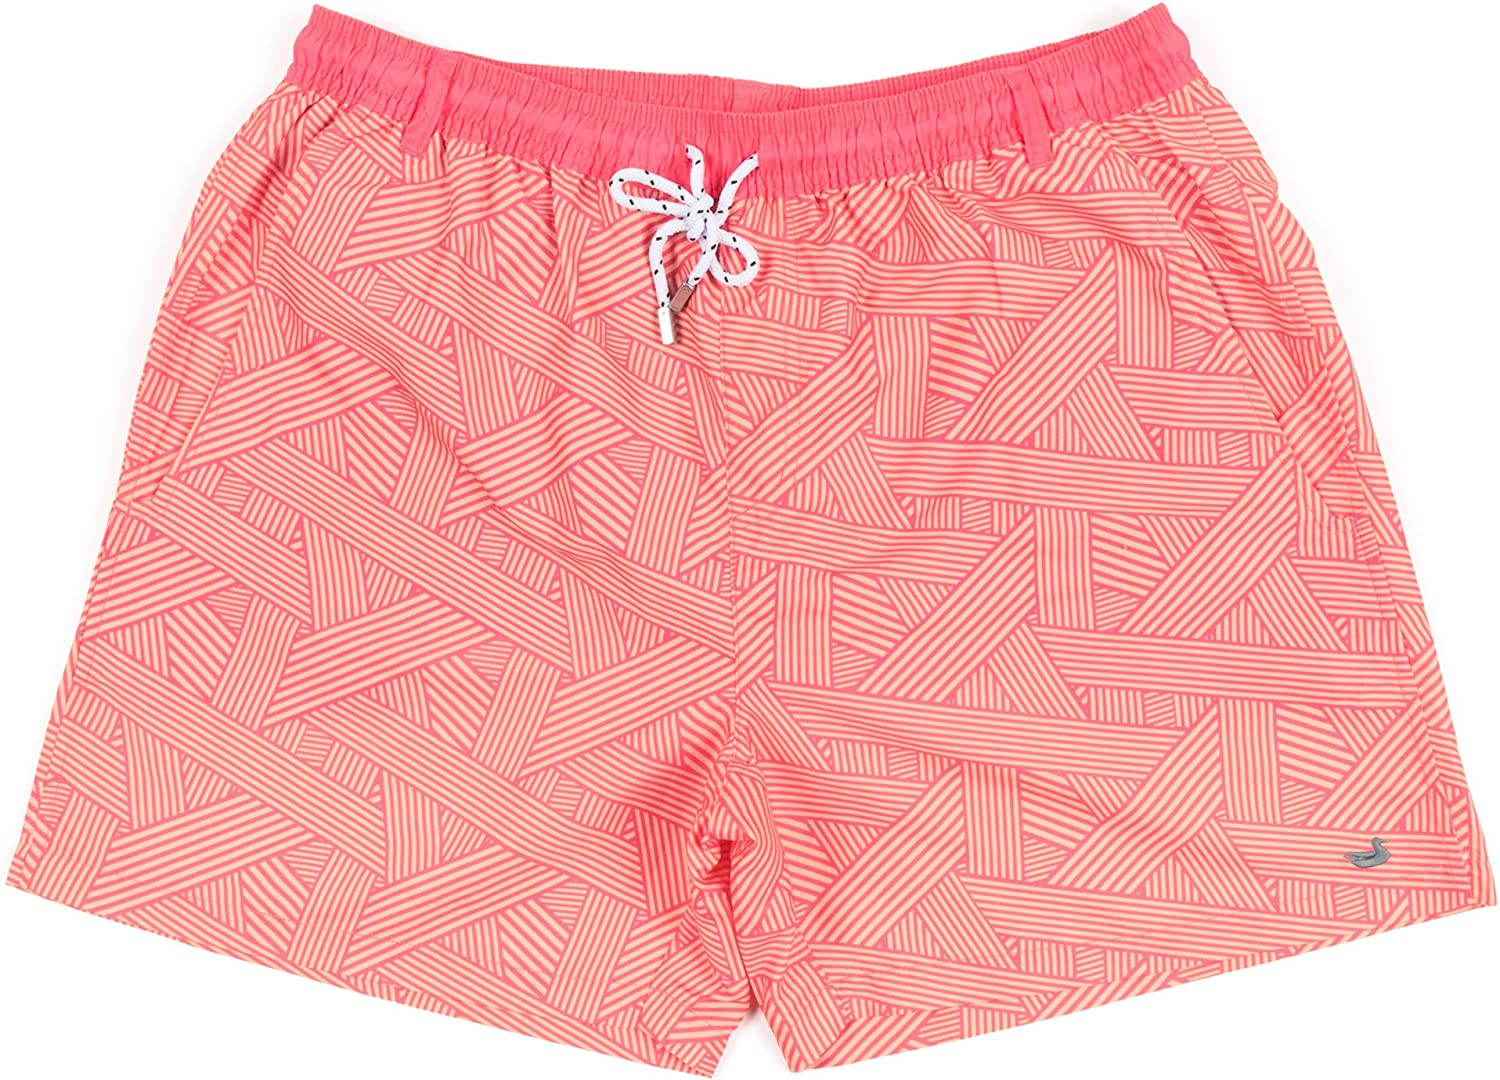 Super beauty product restock quality top! Southern Marsh Dockside Swim Trunk Fractured Lines - Max 44% OFF